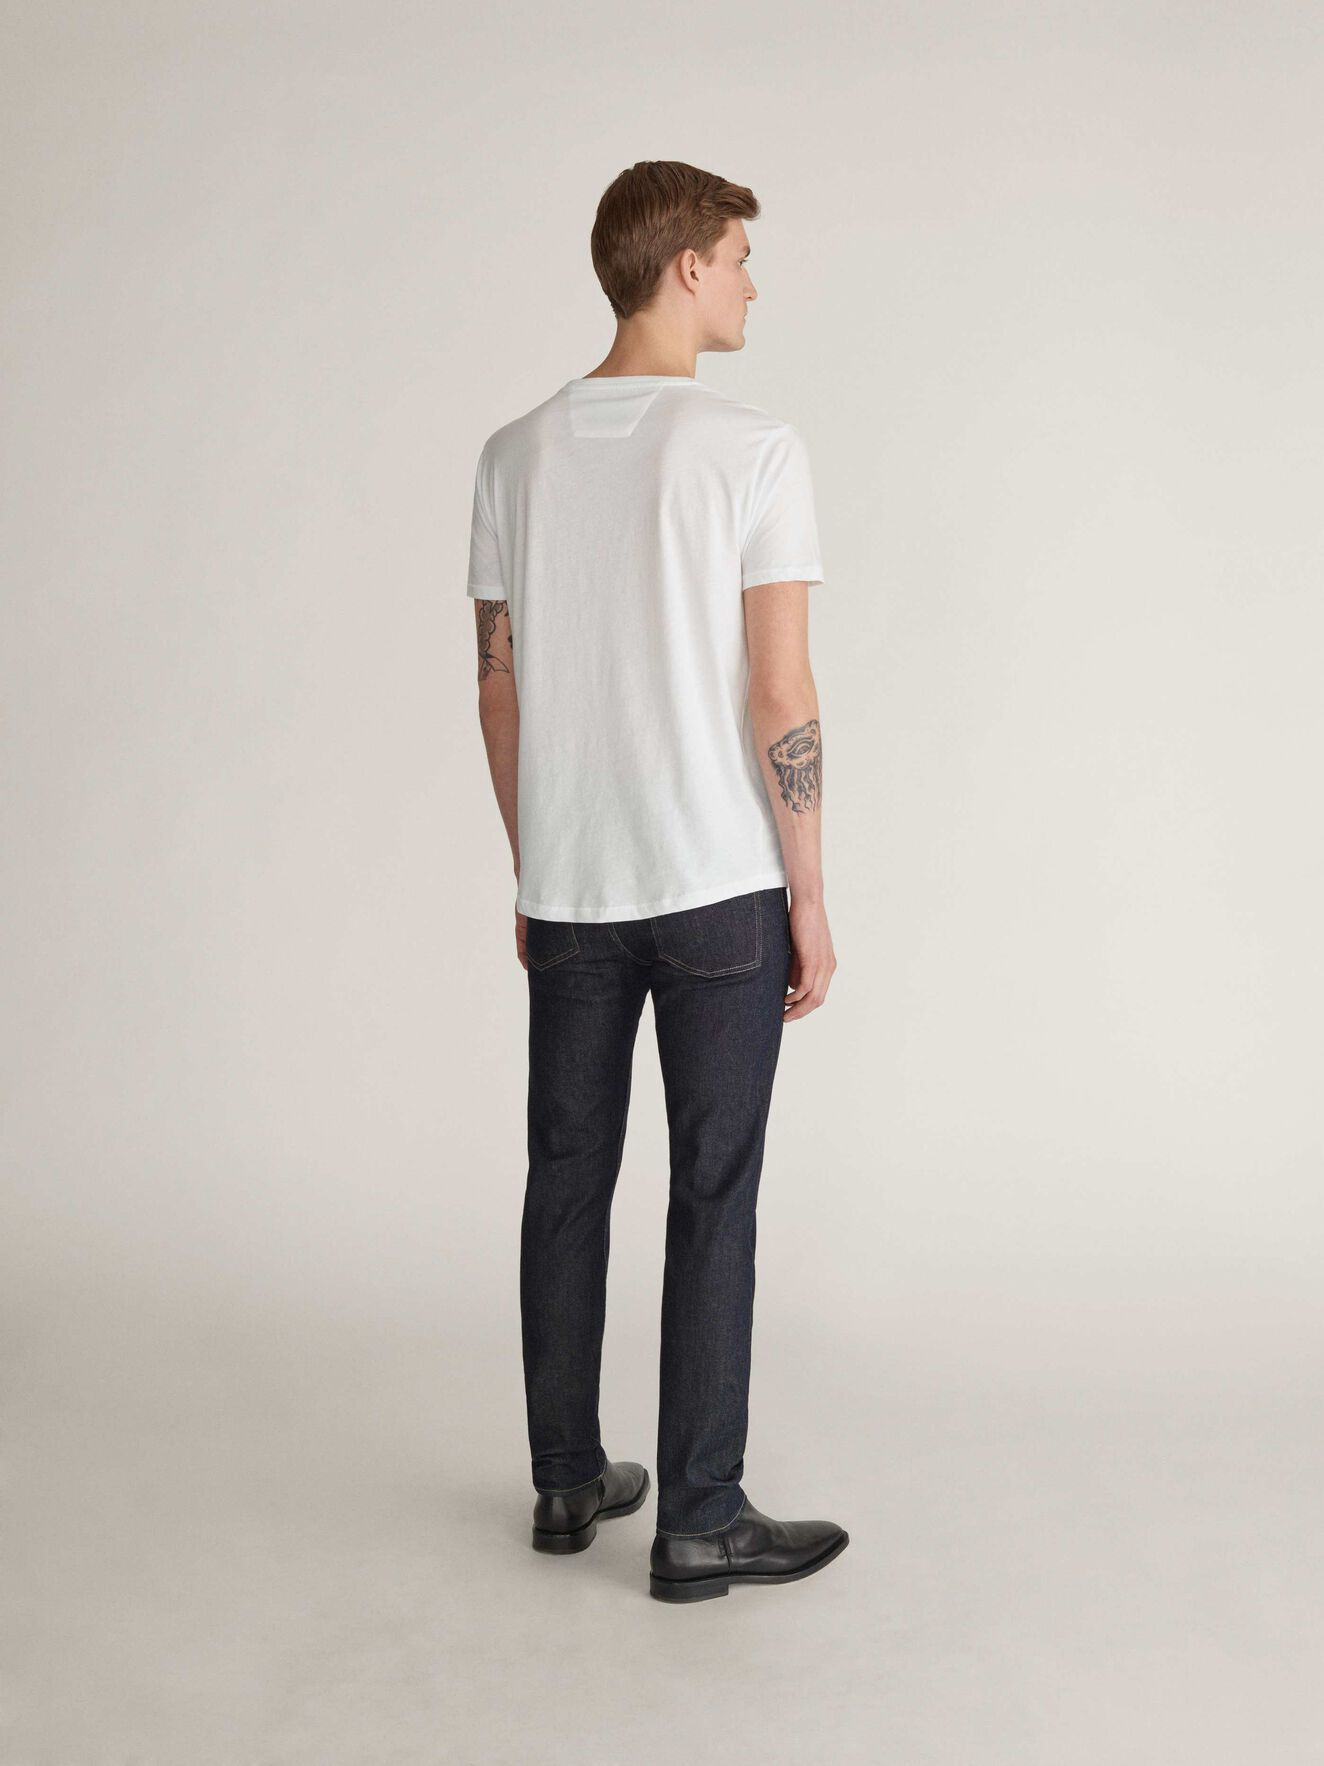 Corey Sol T-Shirt in White from Tiger of Sweden